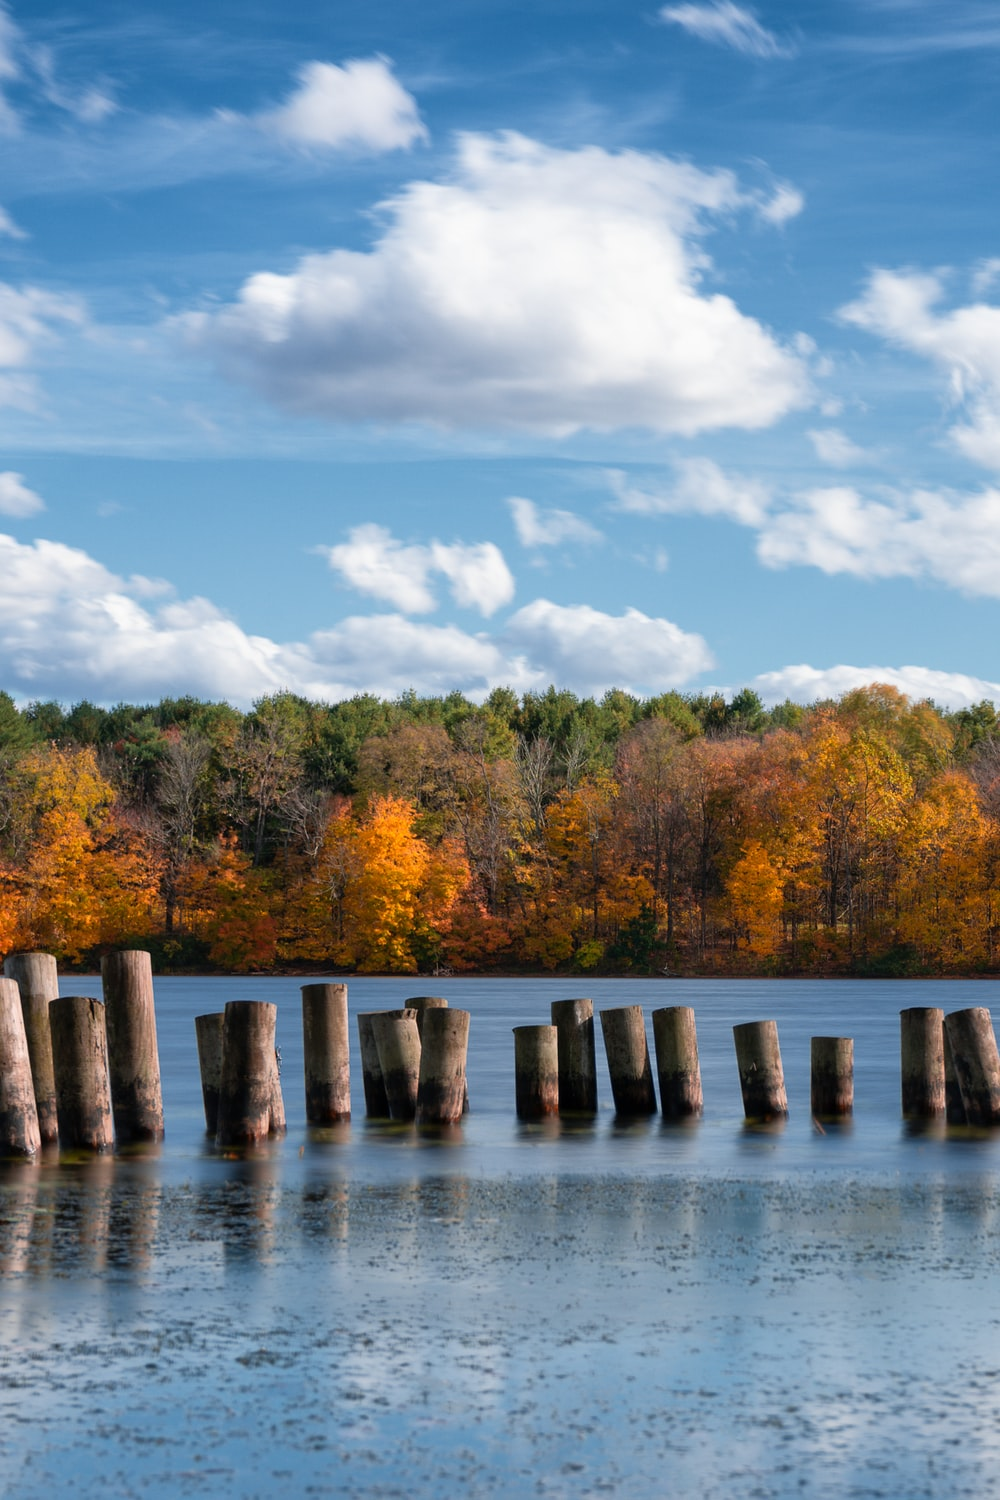 brown wooden posts on body of water near green and yellow trees under blue and white